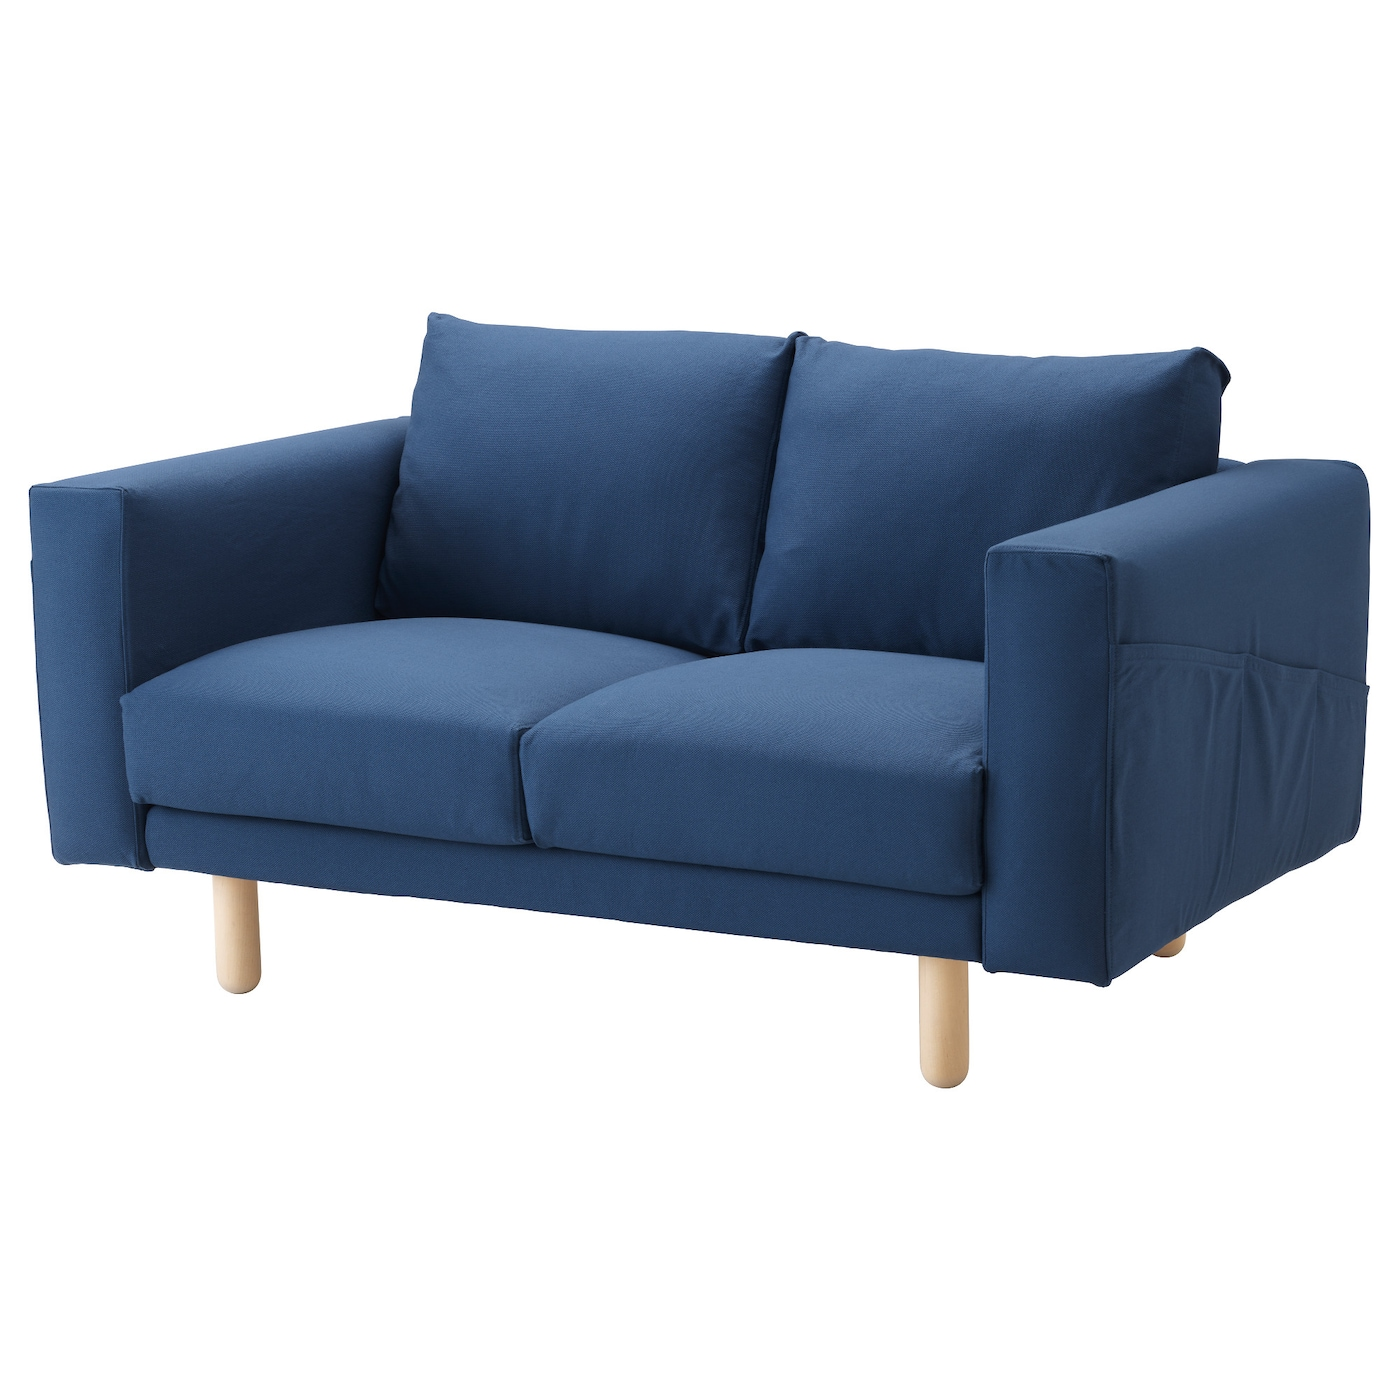 norsborg two seat sofa gr sbo dark blue birch ikea. Black Bedroom Furniture Sets. Home Design Ideas